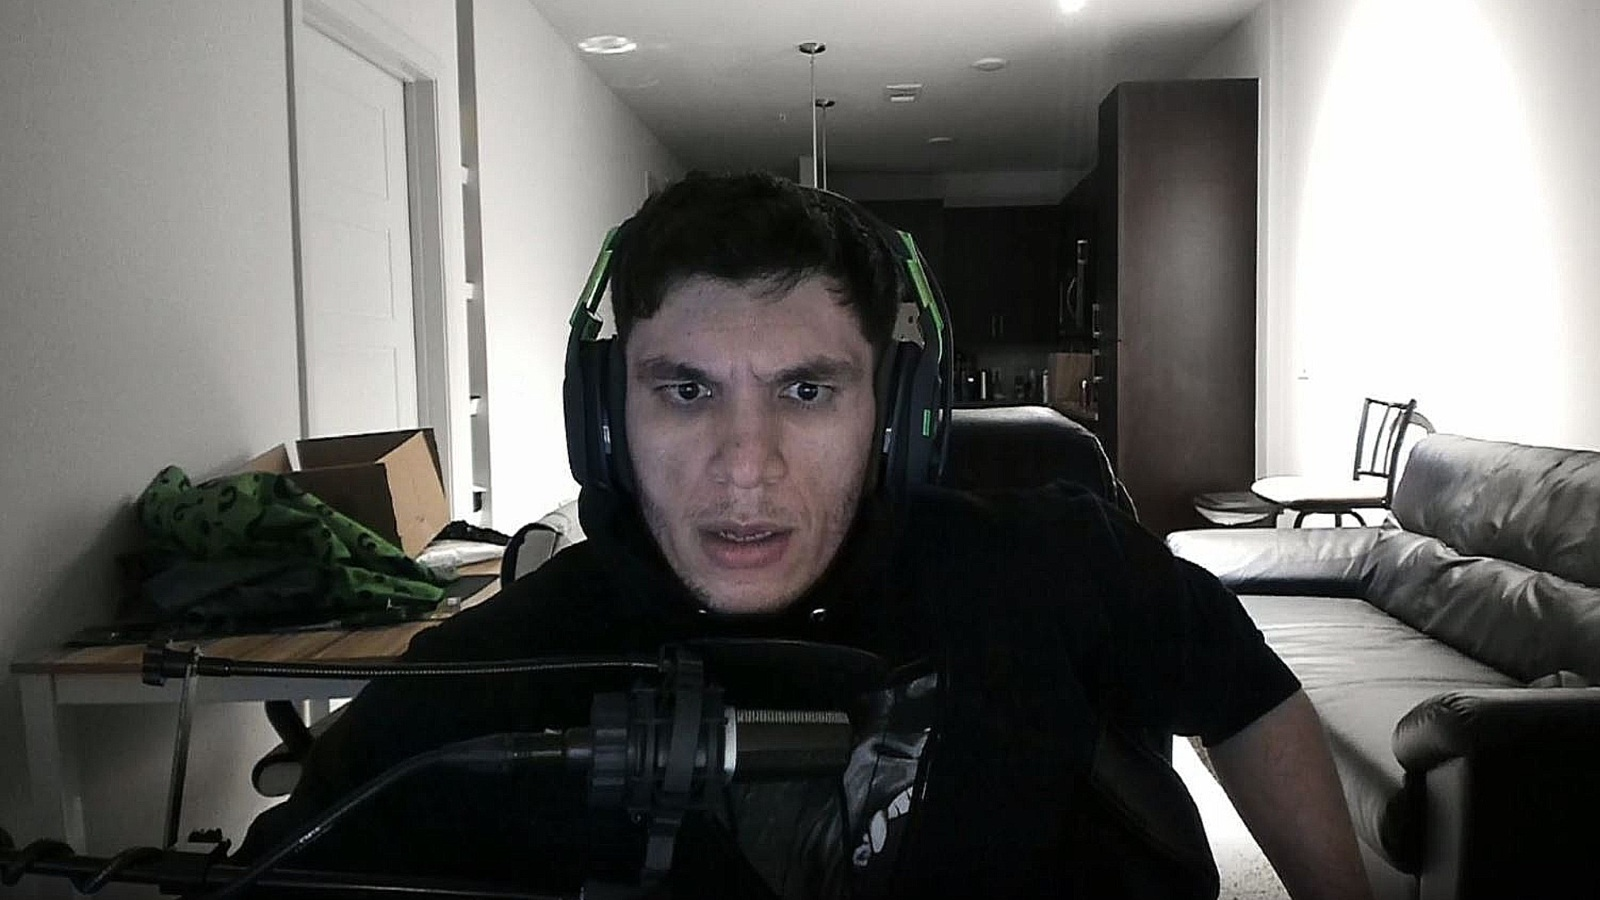 trainwreckstv streaming on Twitch